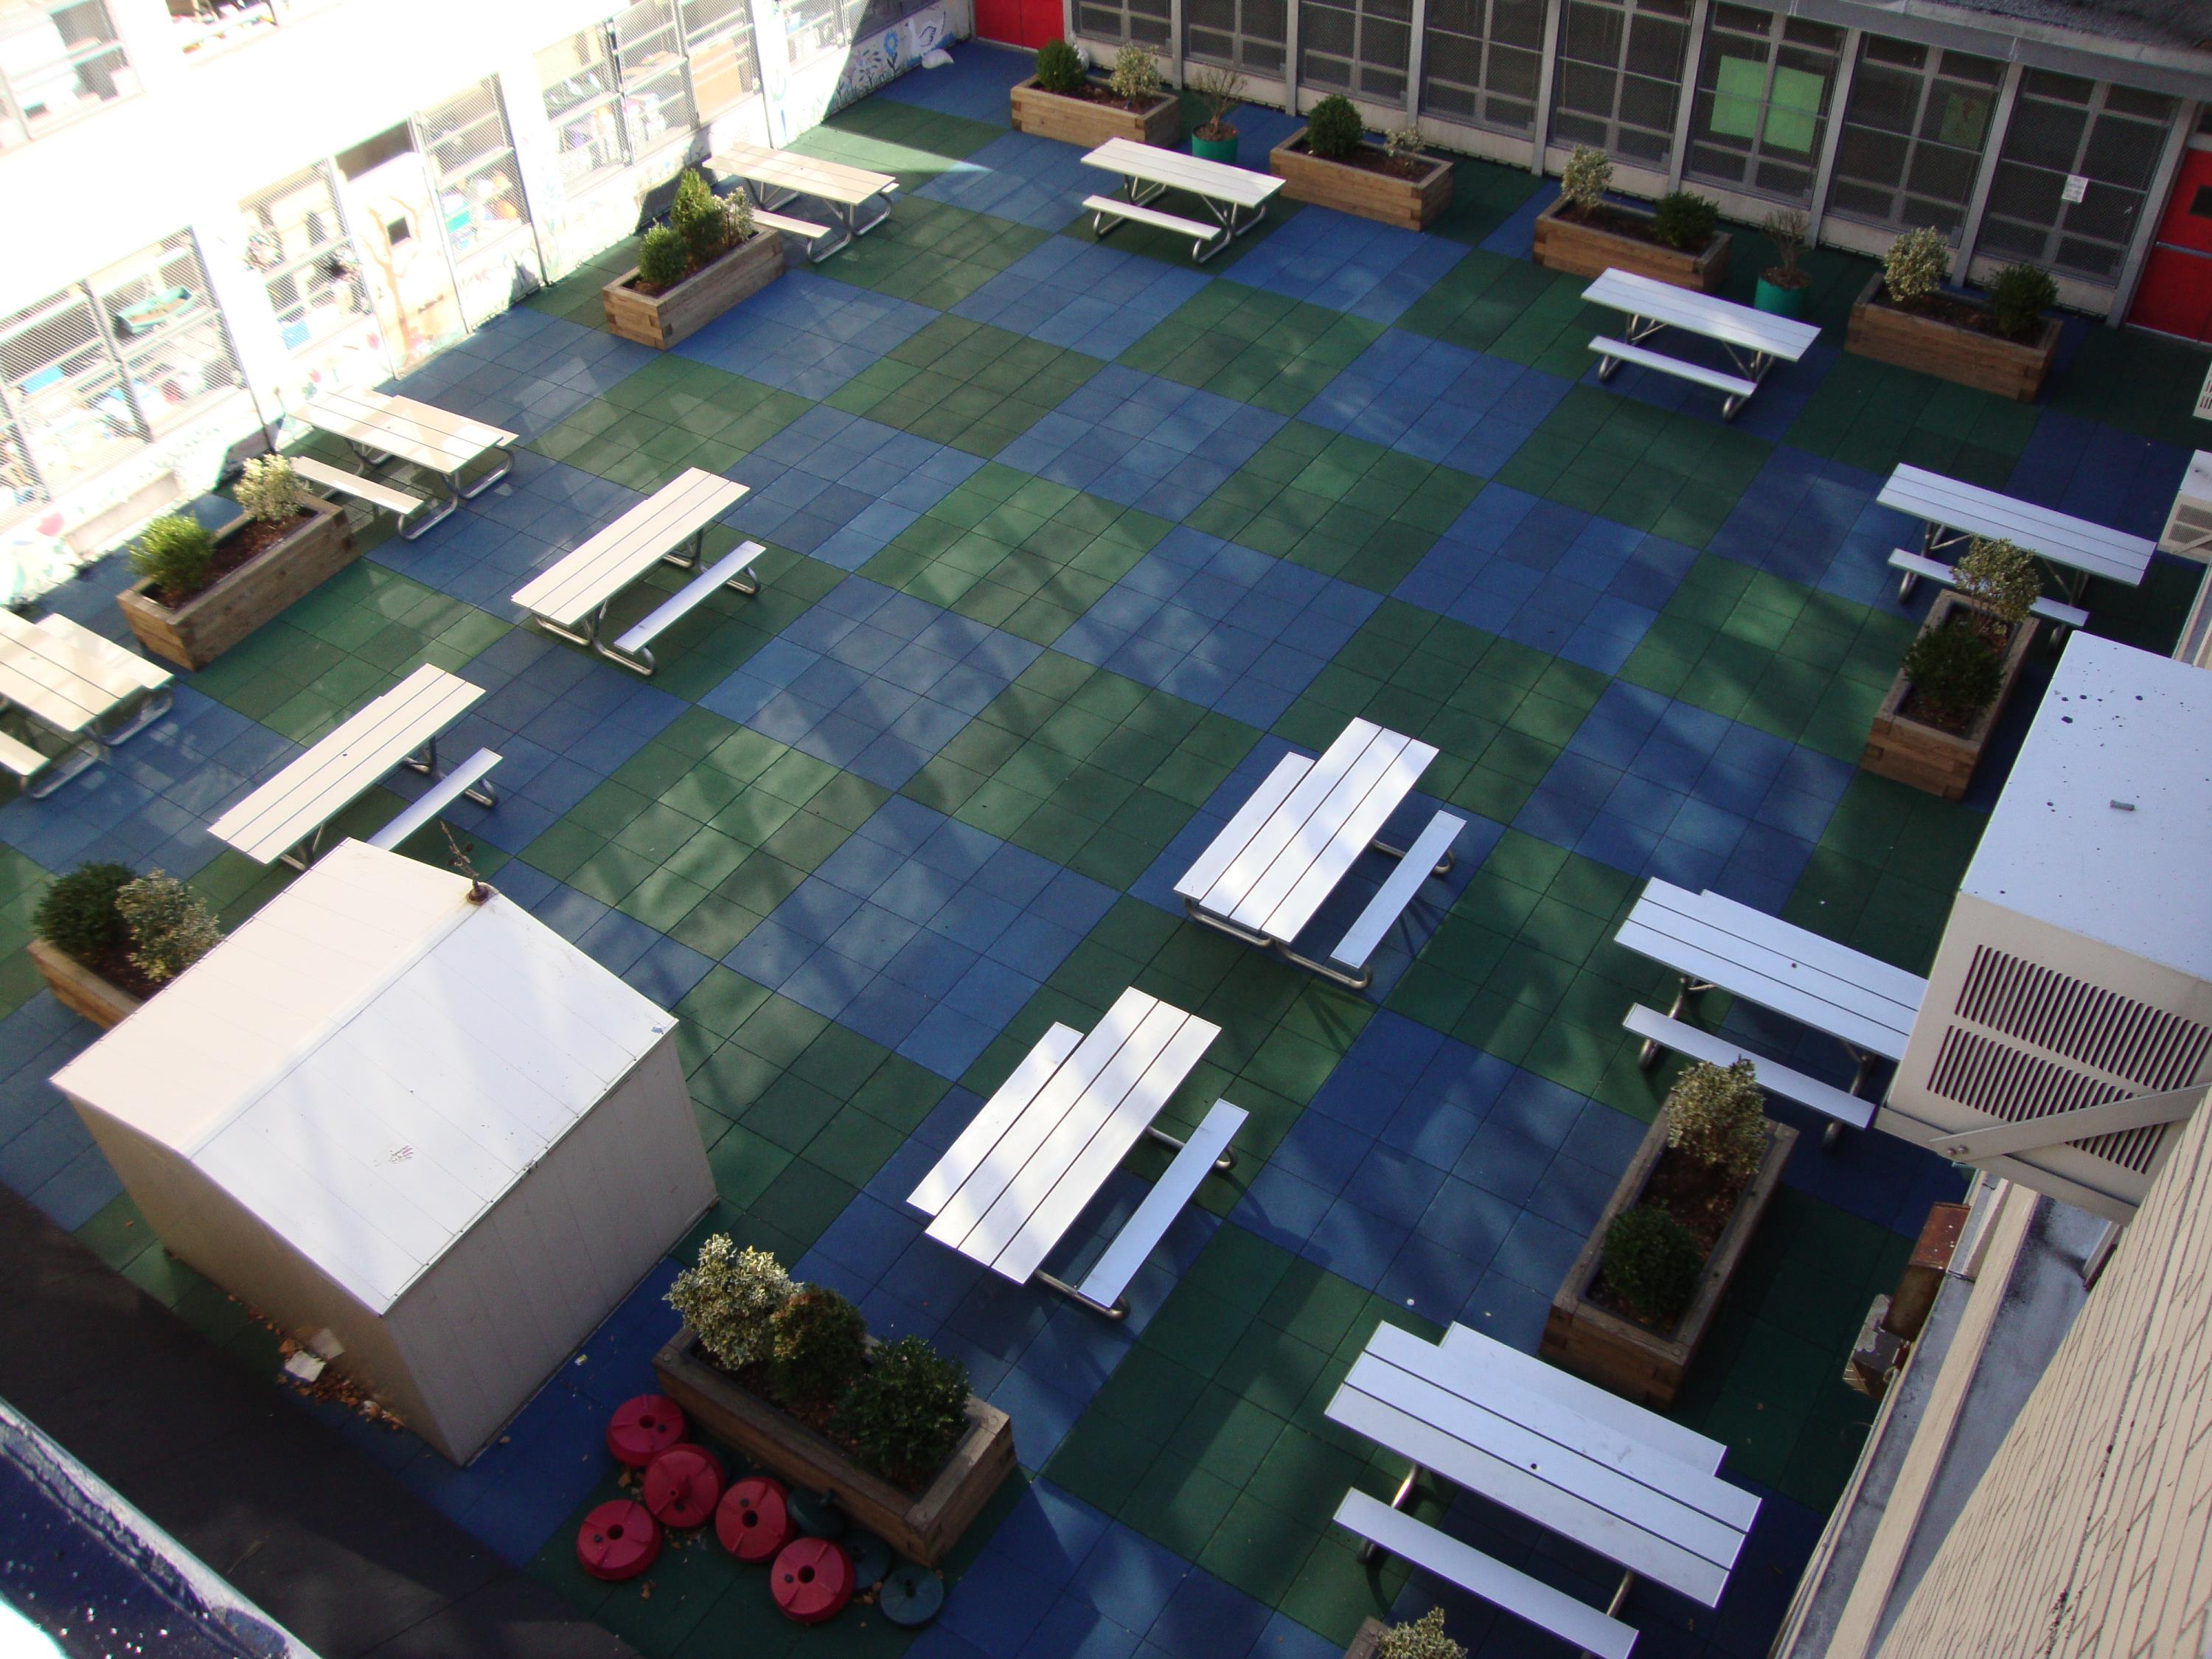 Public School Recreational Rooftop Playground Area Over Concrete Pavers